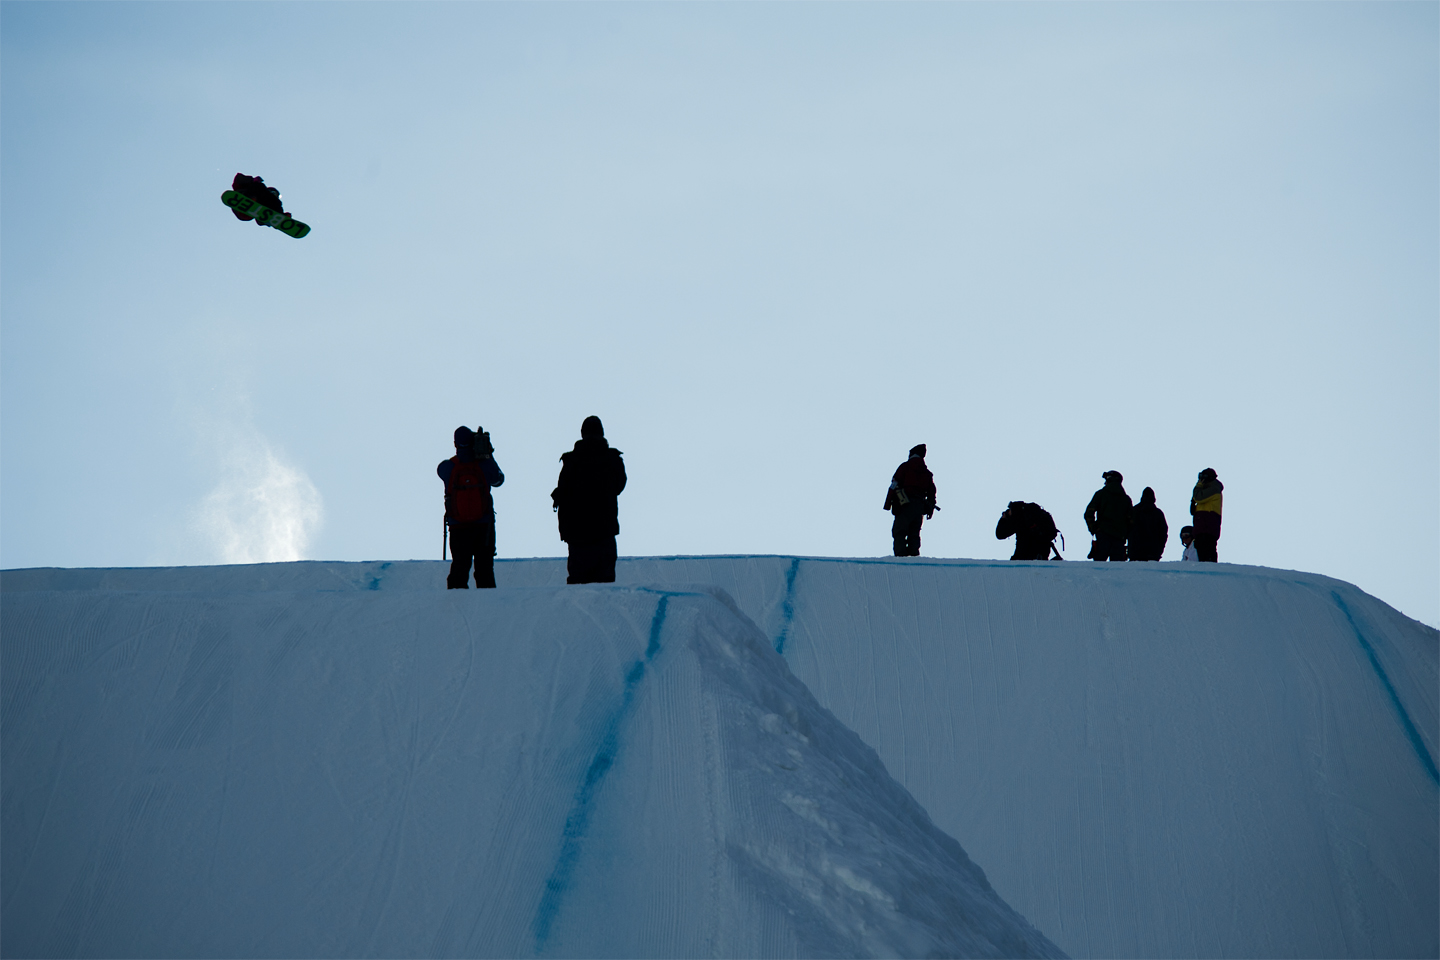 Halldor Helgason, Snowboard Big Air